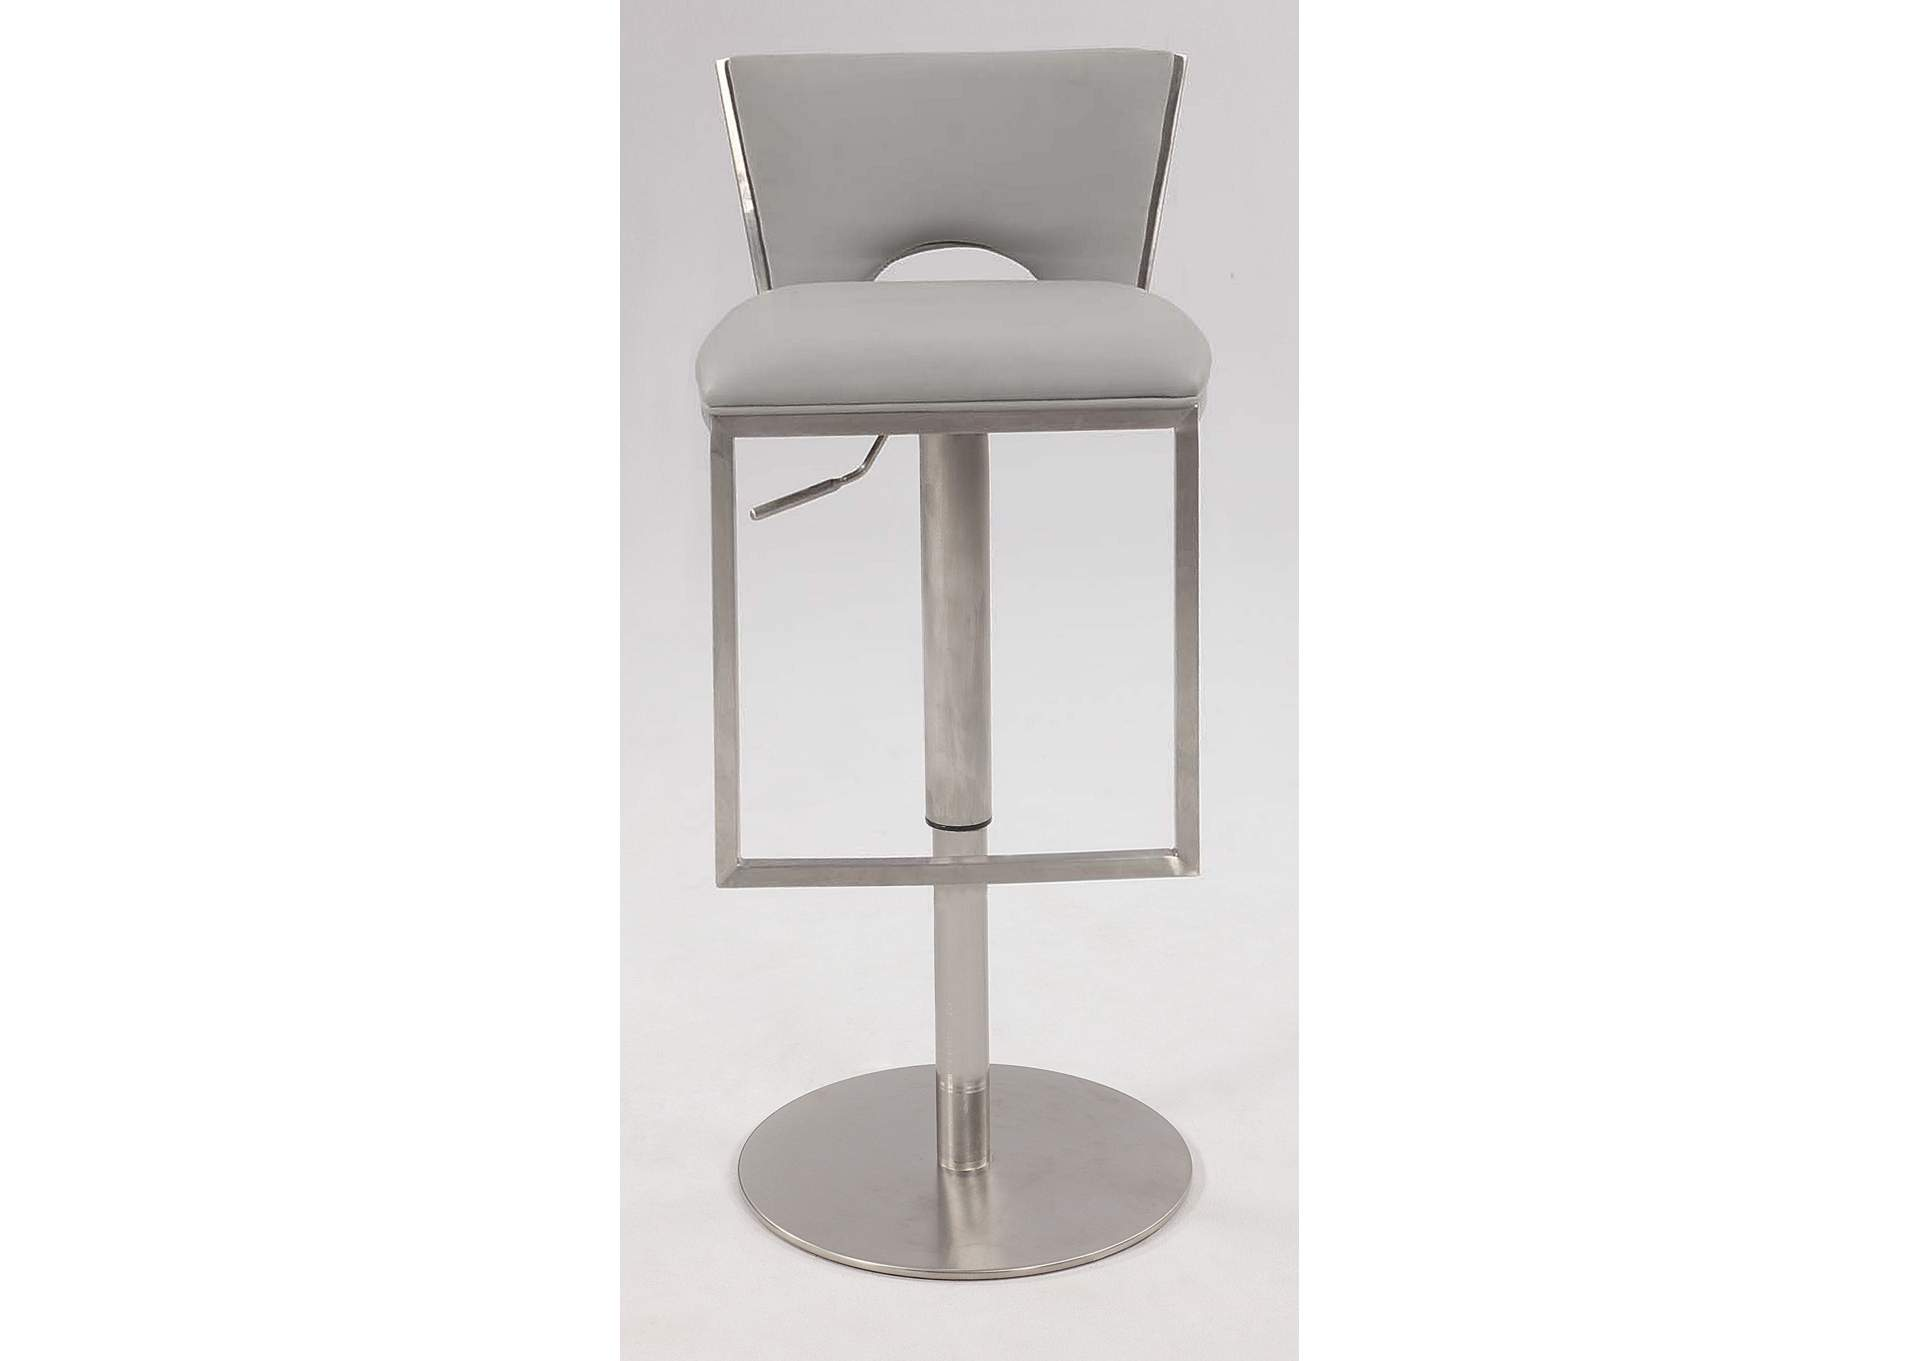 Light Grey Low Back Upholstered Pneumatic Gas Lift Adjustable Height Stool,Chintaly Imports